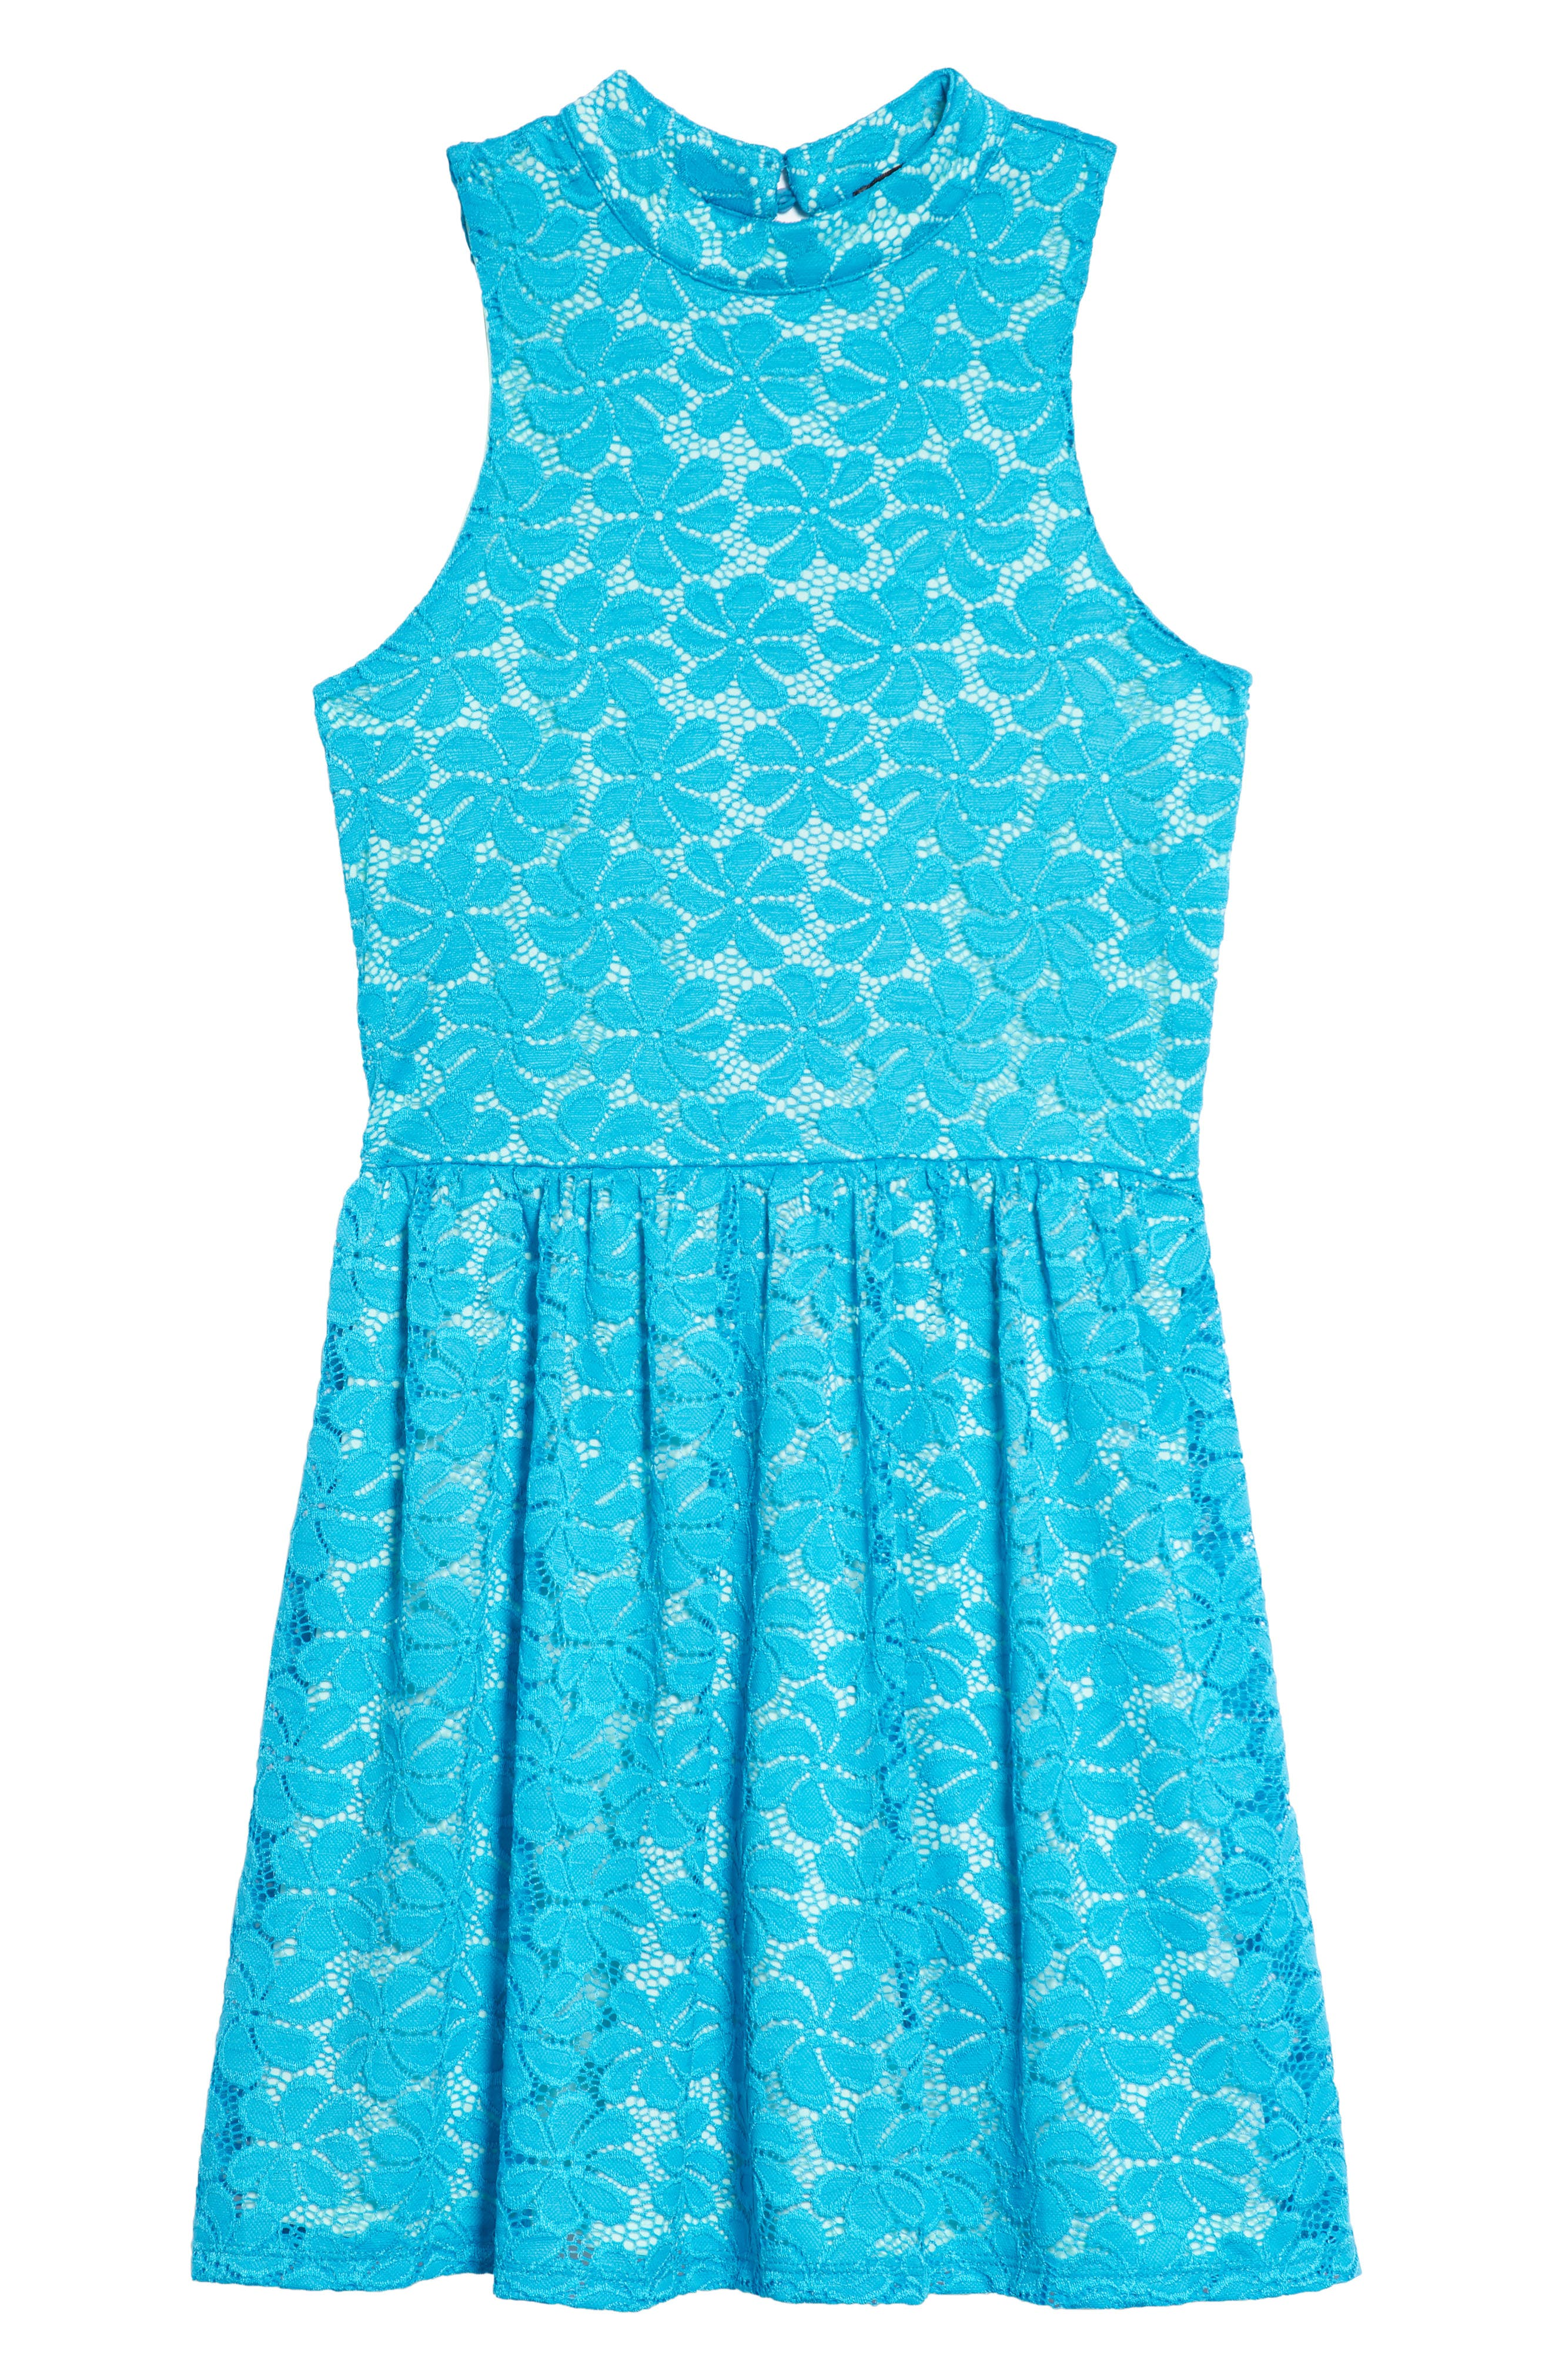 Hailee Lace Dress,                         Main,                         color, Teal